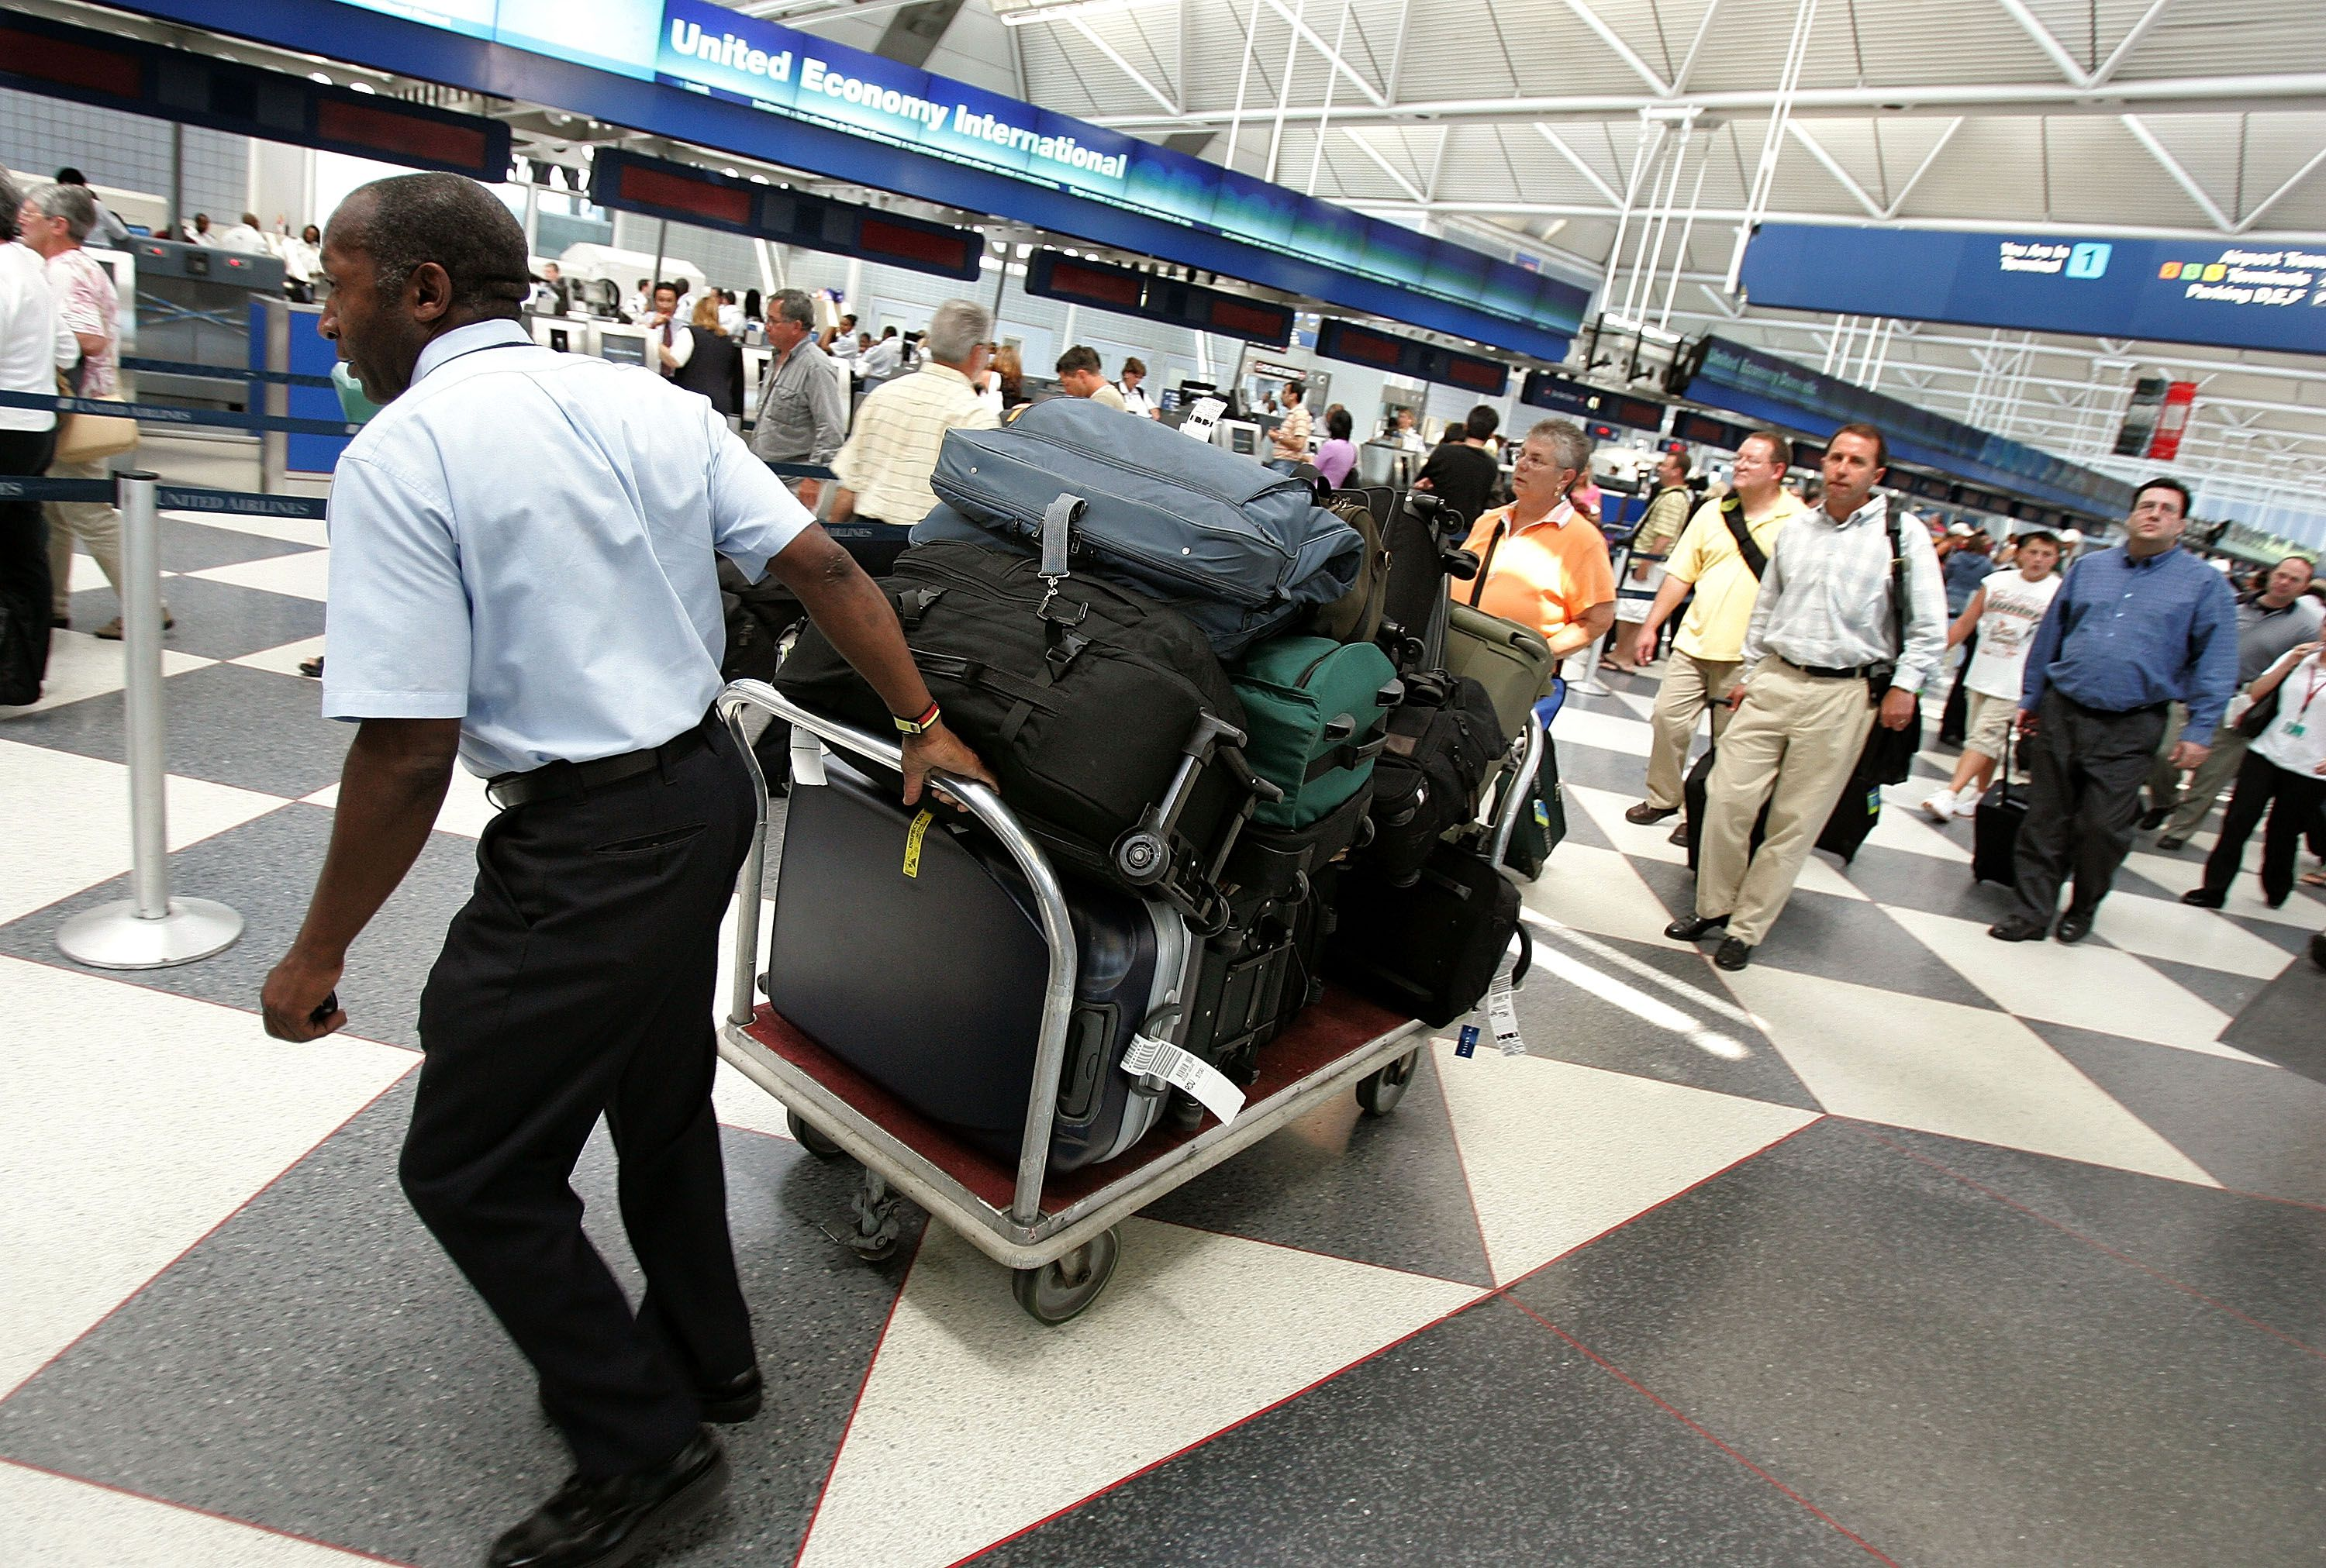 Tips For Beating The Airlines Checked Baggage Fees